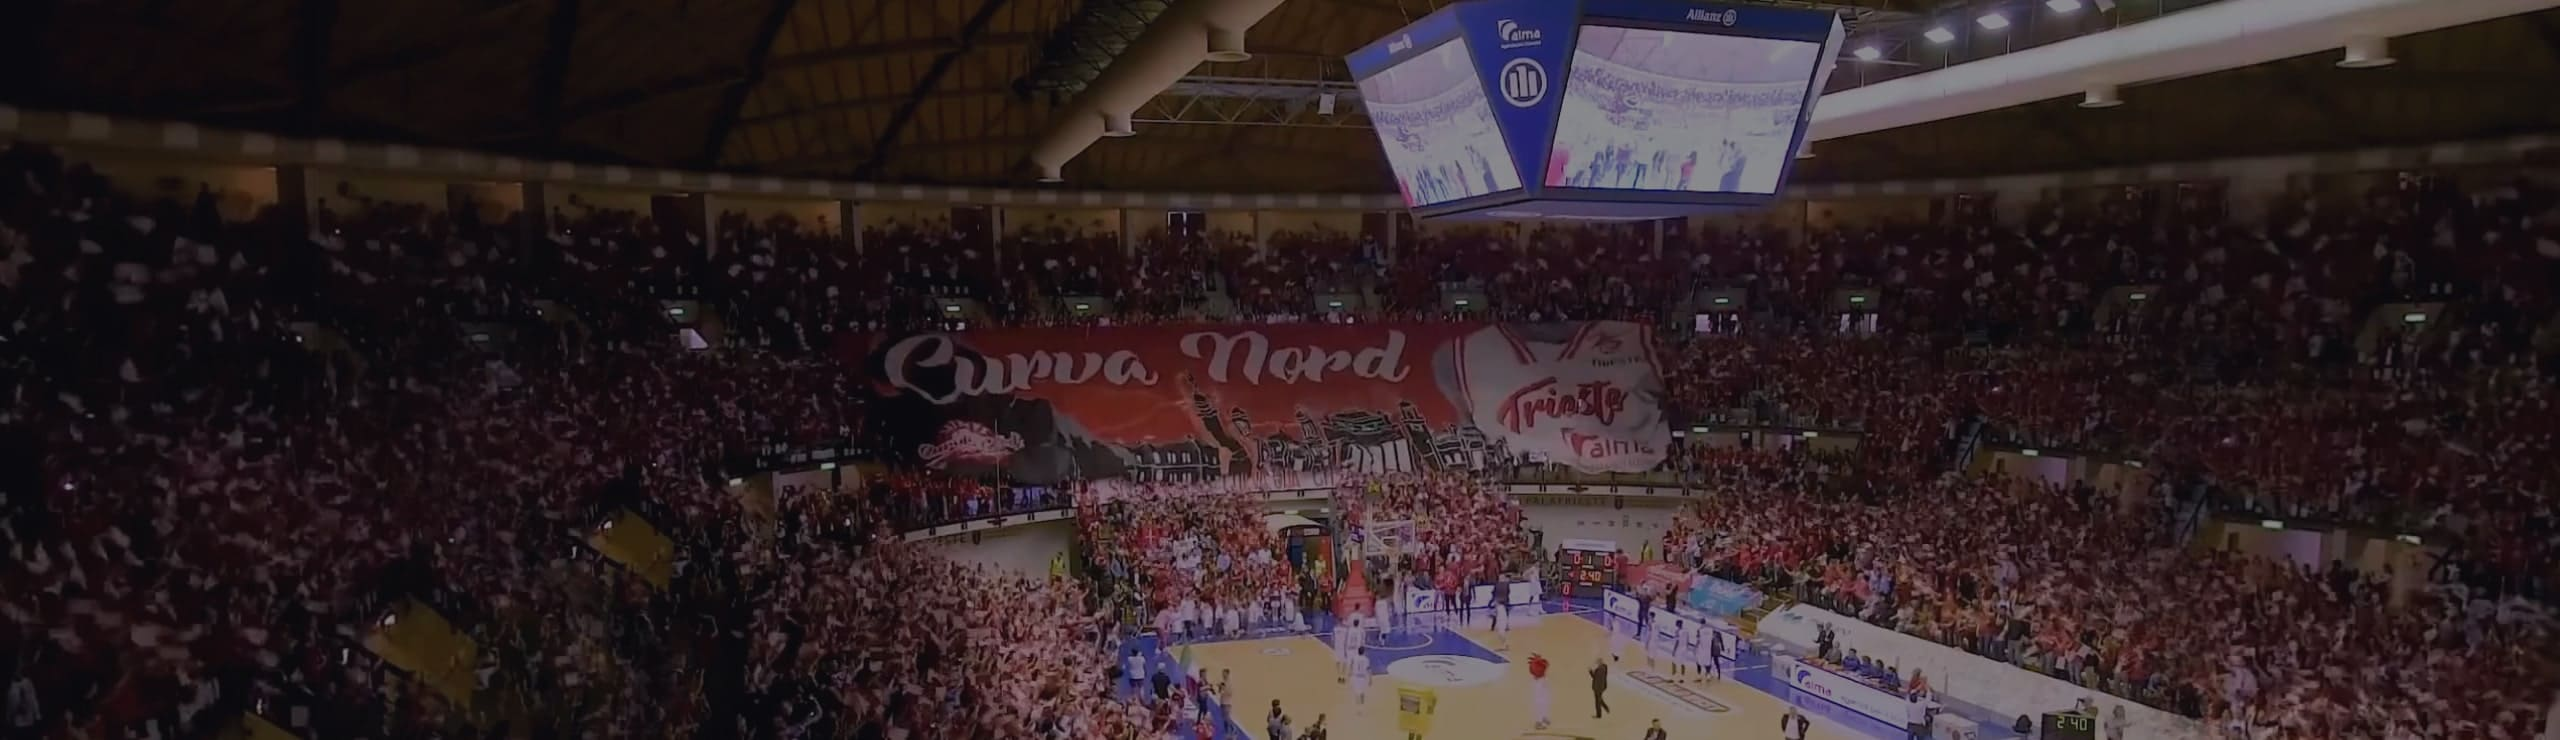 Alma-Pallacanestro-trieste-basketball-club_Mobile Video Thumnail